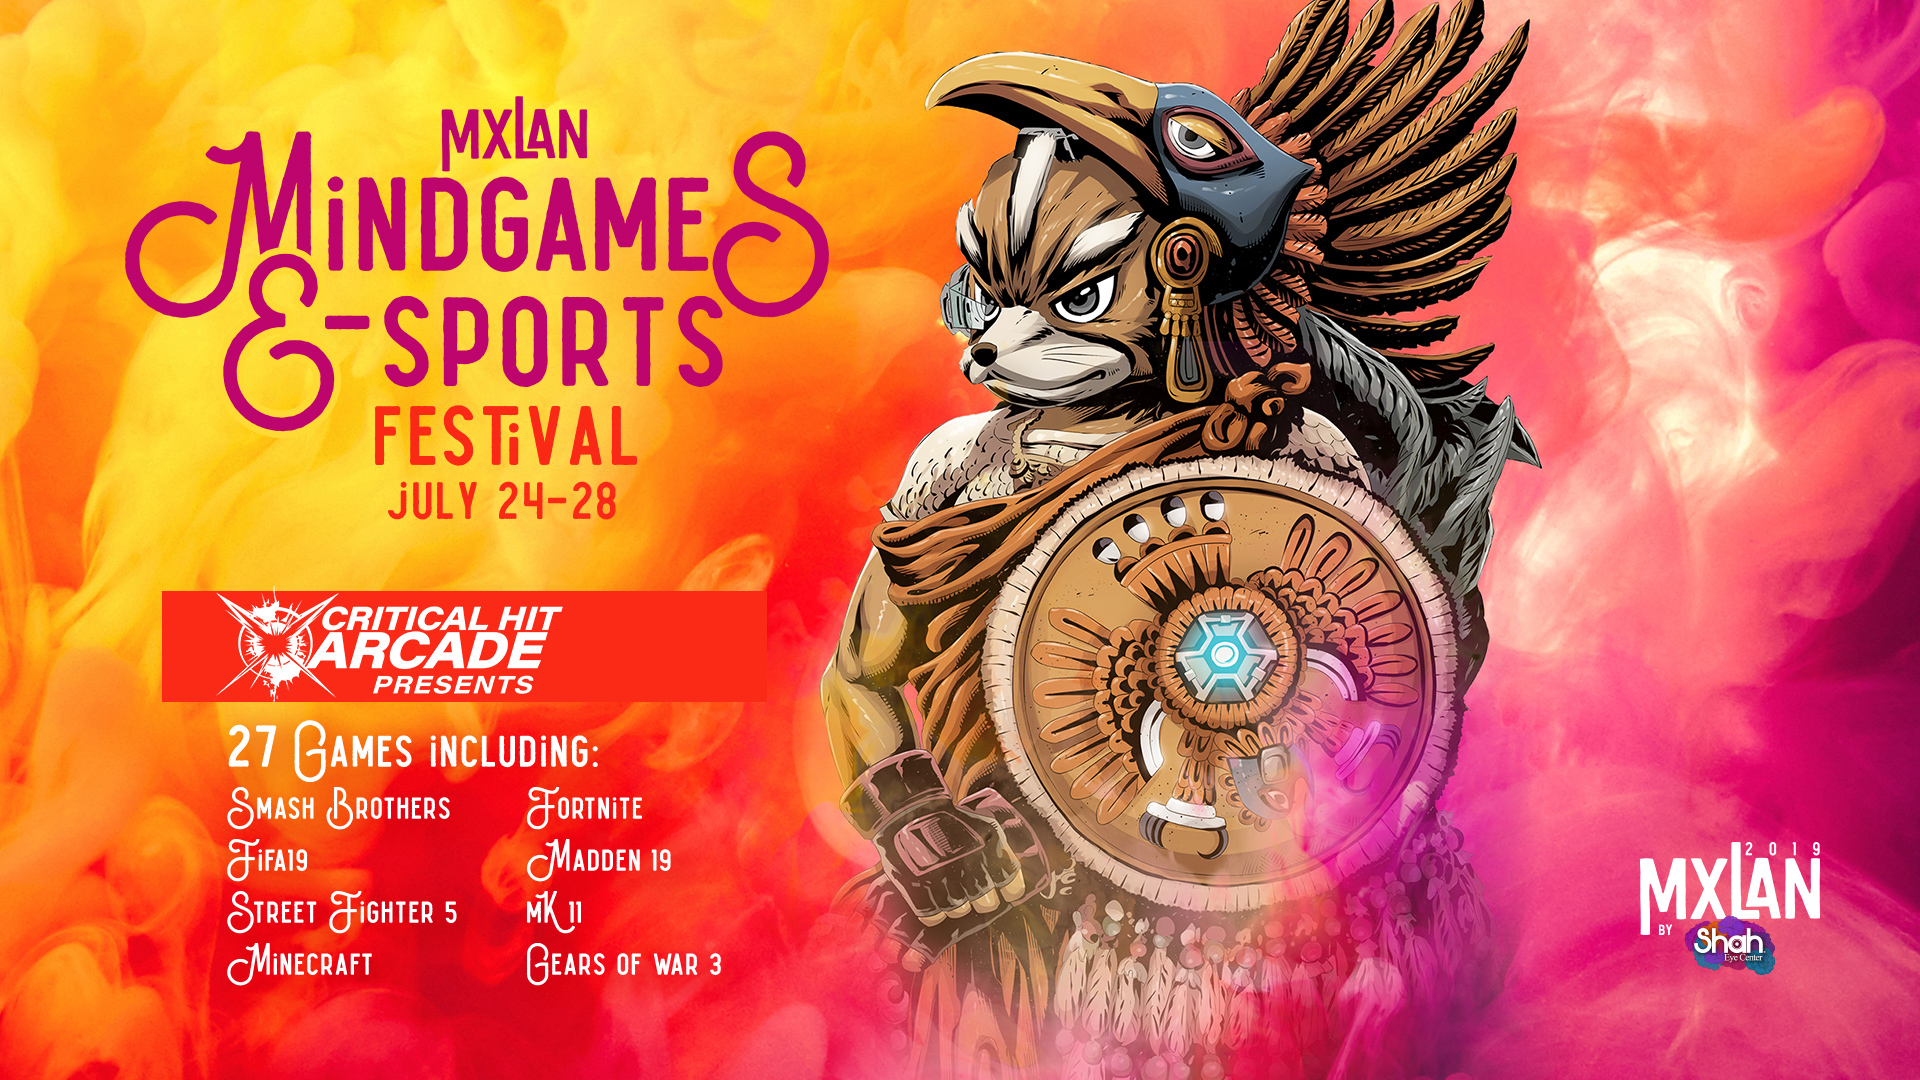 mxlan mind games e sports games gaming e-sports festival concerts mcallen festival border music calenda parade vacation texas san antonio south padre island